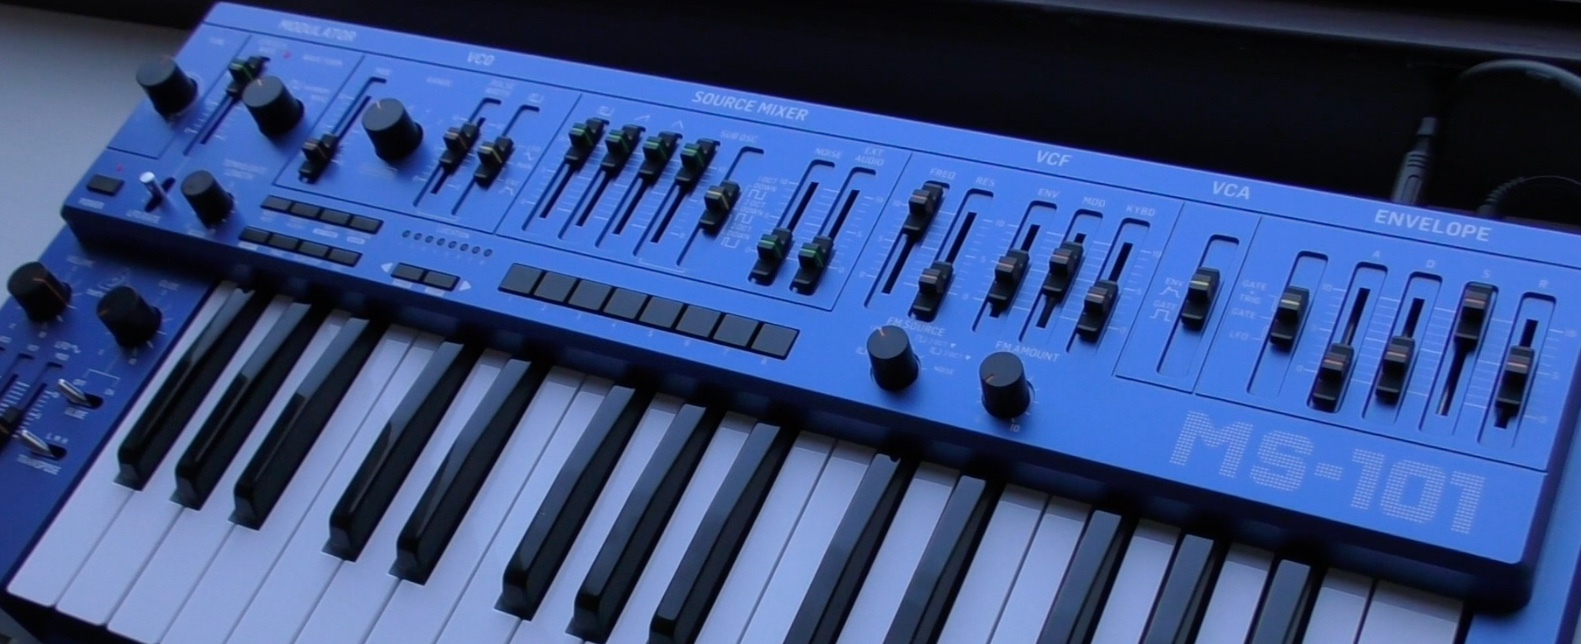 MS-101 - SYNTH ANATOMY